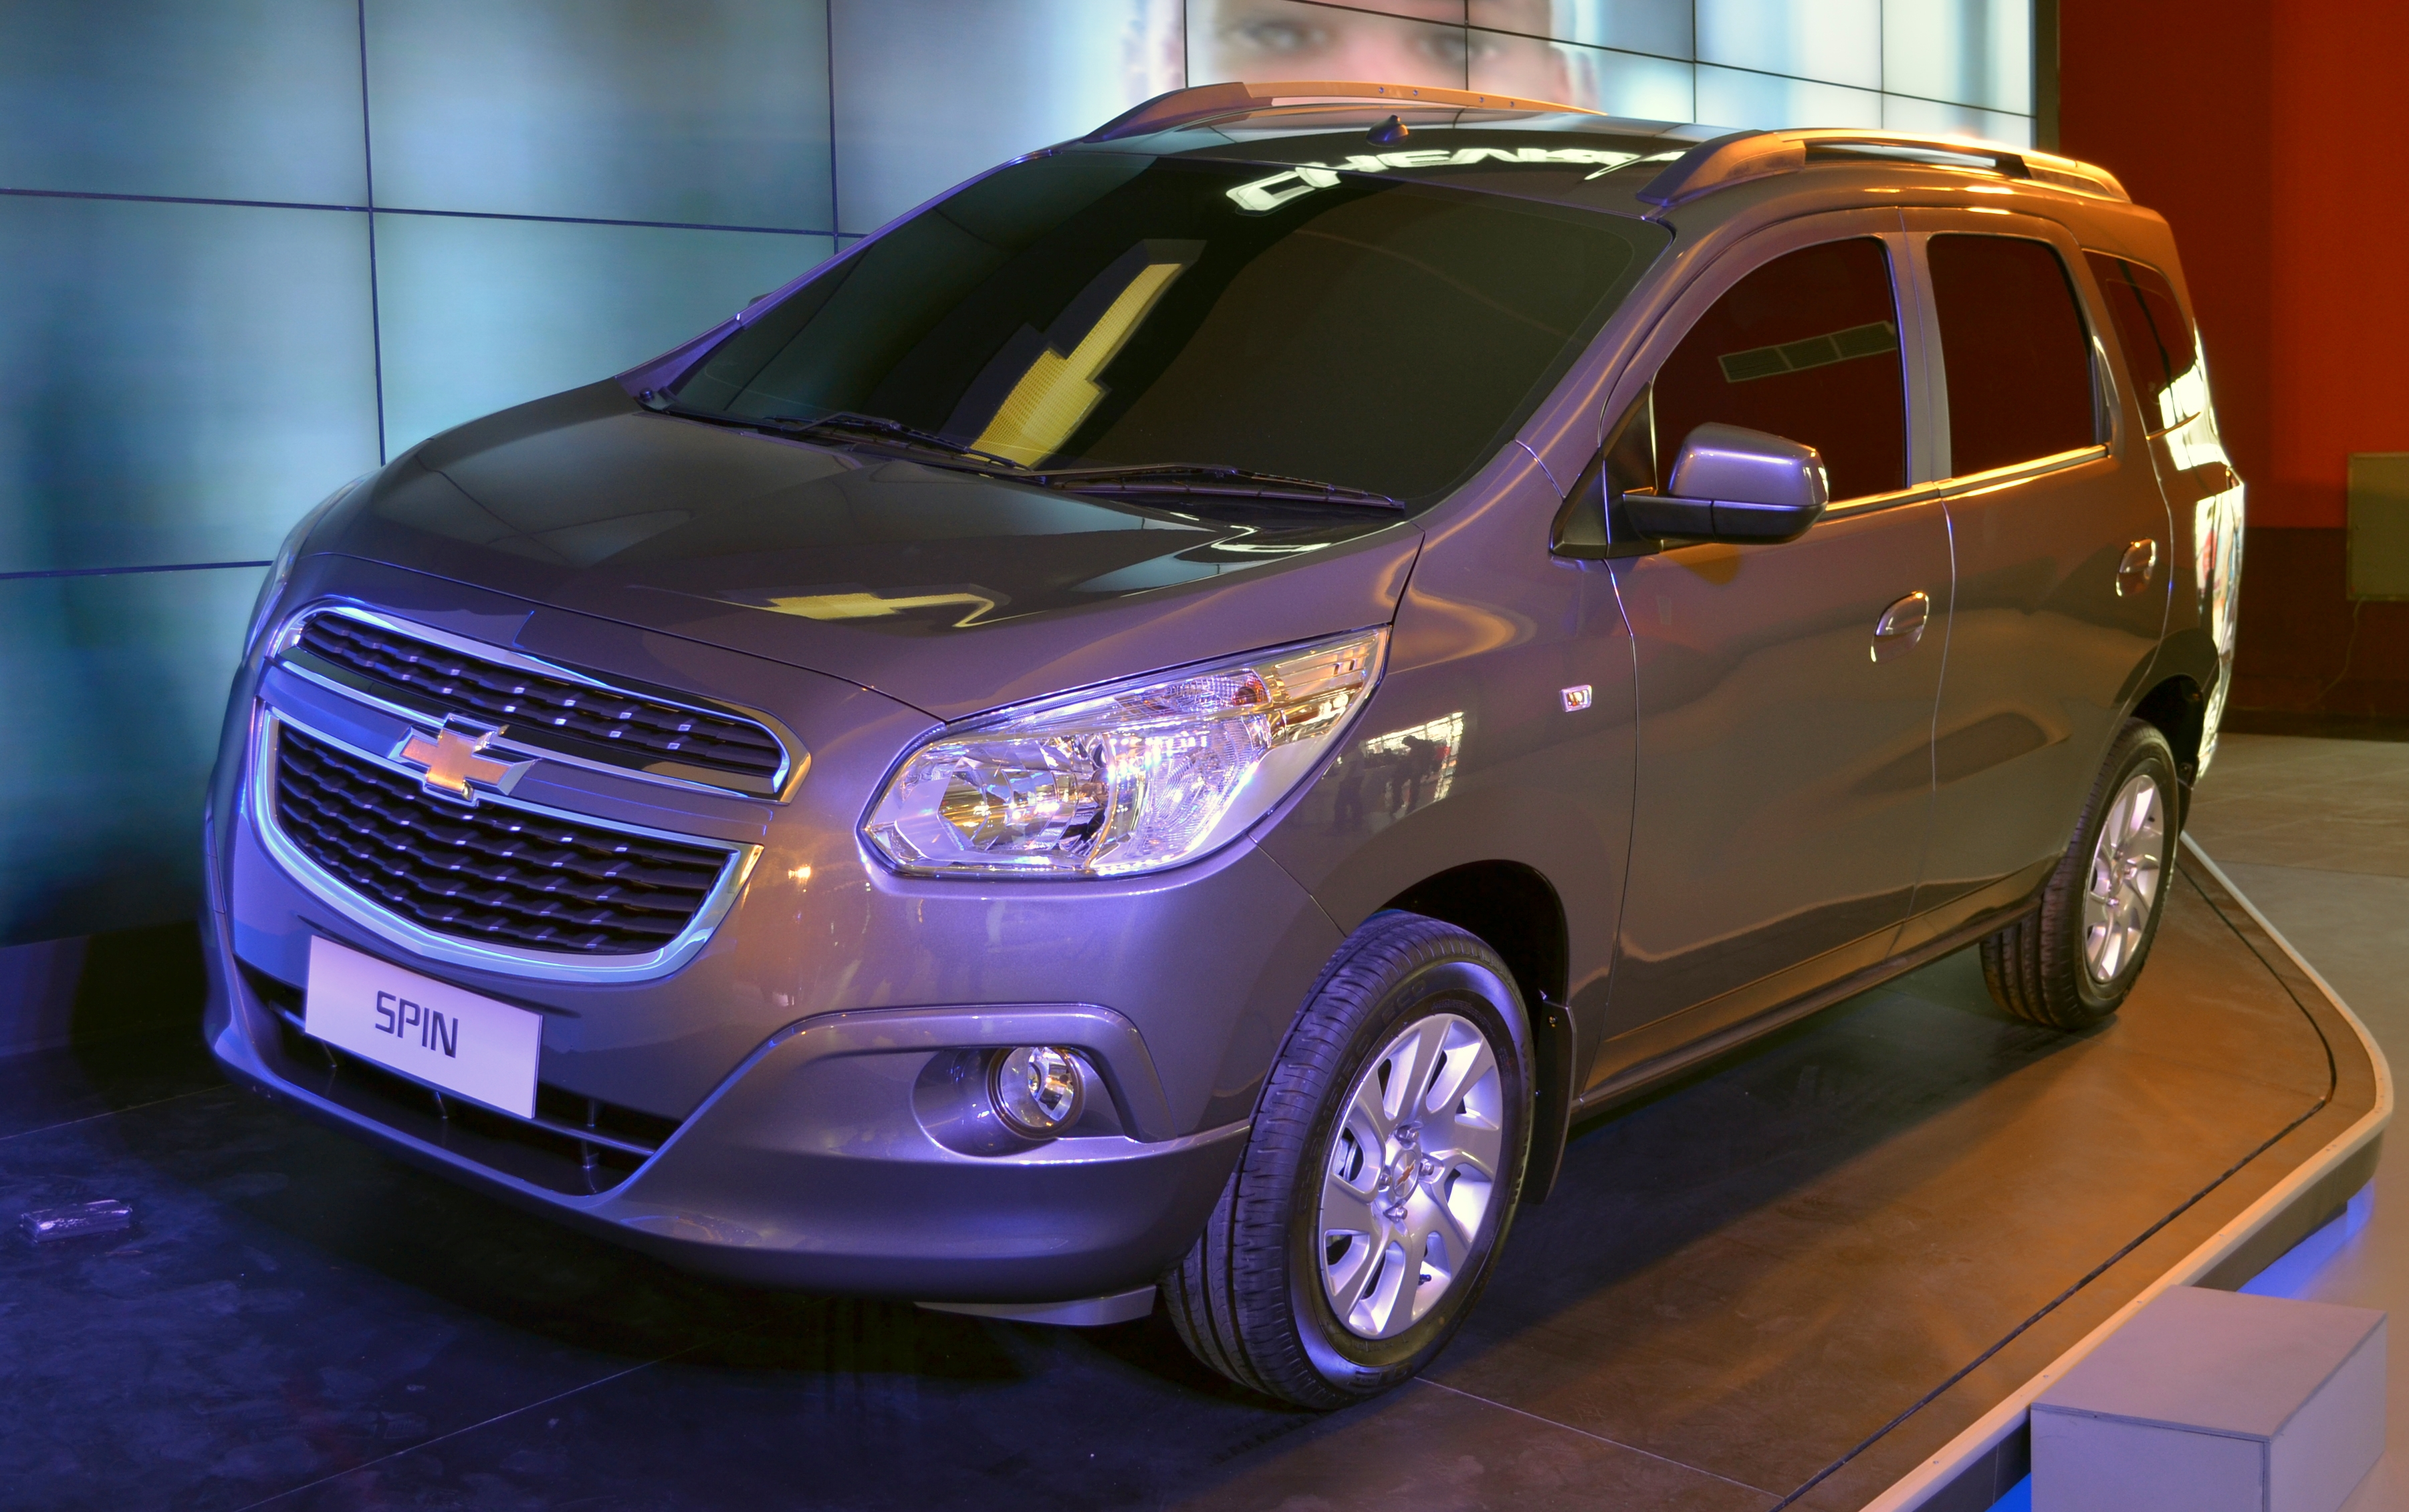 Chevrolet Spin To Make Indonesian Debut In 2013 Paultan Org